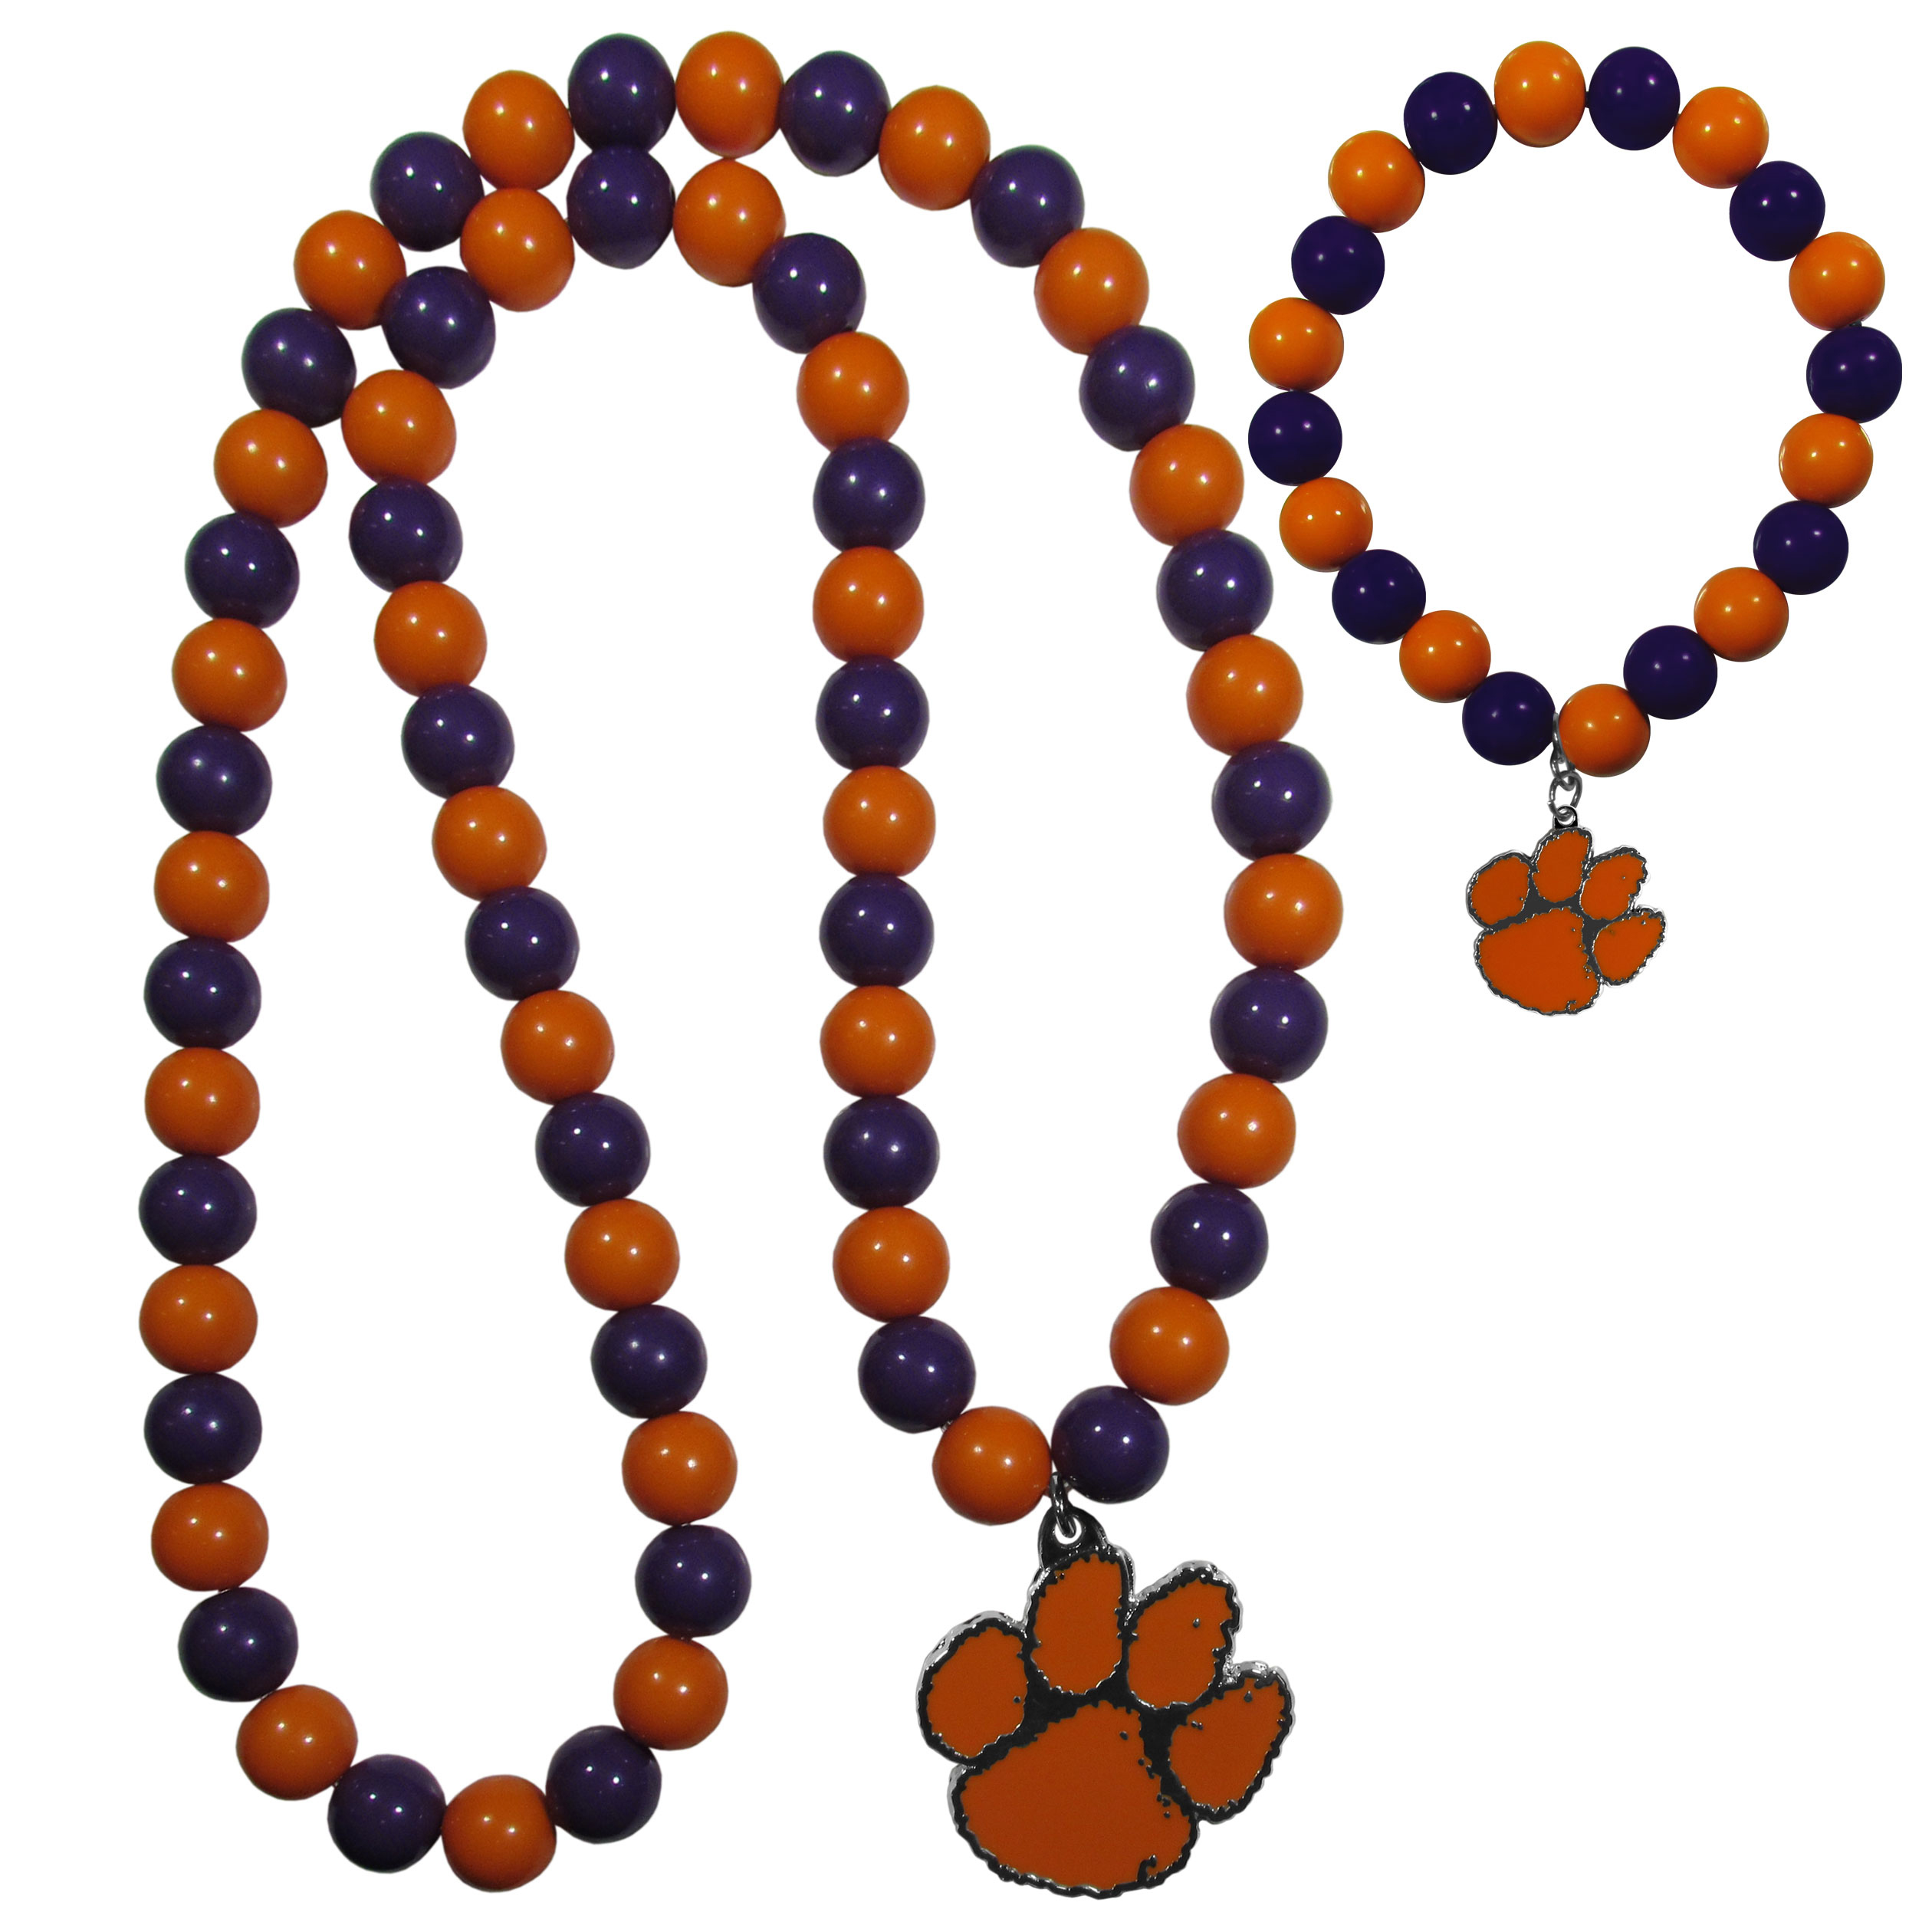 Clemson Tigers Fan Bead Necklace and Bracelet Set - These fun and colorful Clemson Tigers fan bead jewelry pieces are an eyecatching way to show off your team spirit. The striking necklace is a 24 inch string of alternating team colored beads with a large team pendant. The mathcing bracelet has alternating team colored beads on a stretch cord and features a matching team charm.